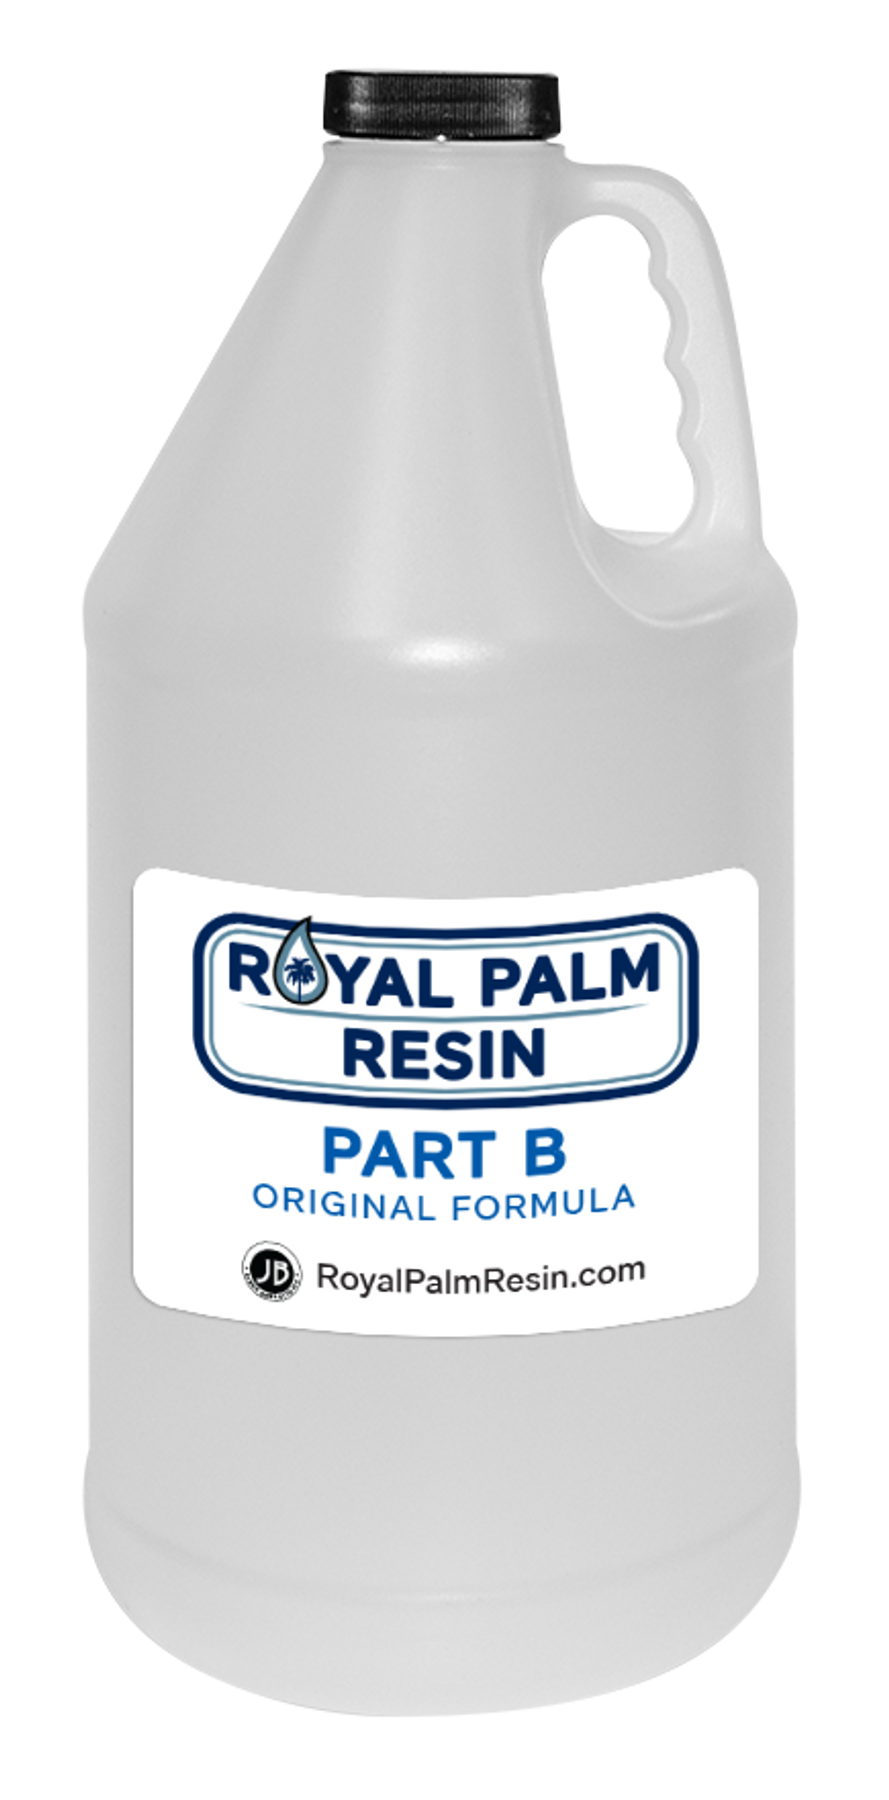 Royal Palm Epoxy Resin (Original formula) 1 US gallon (64 fl oz part B )